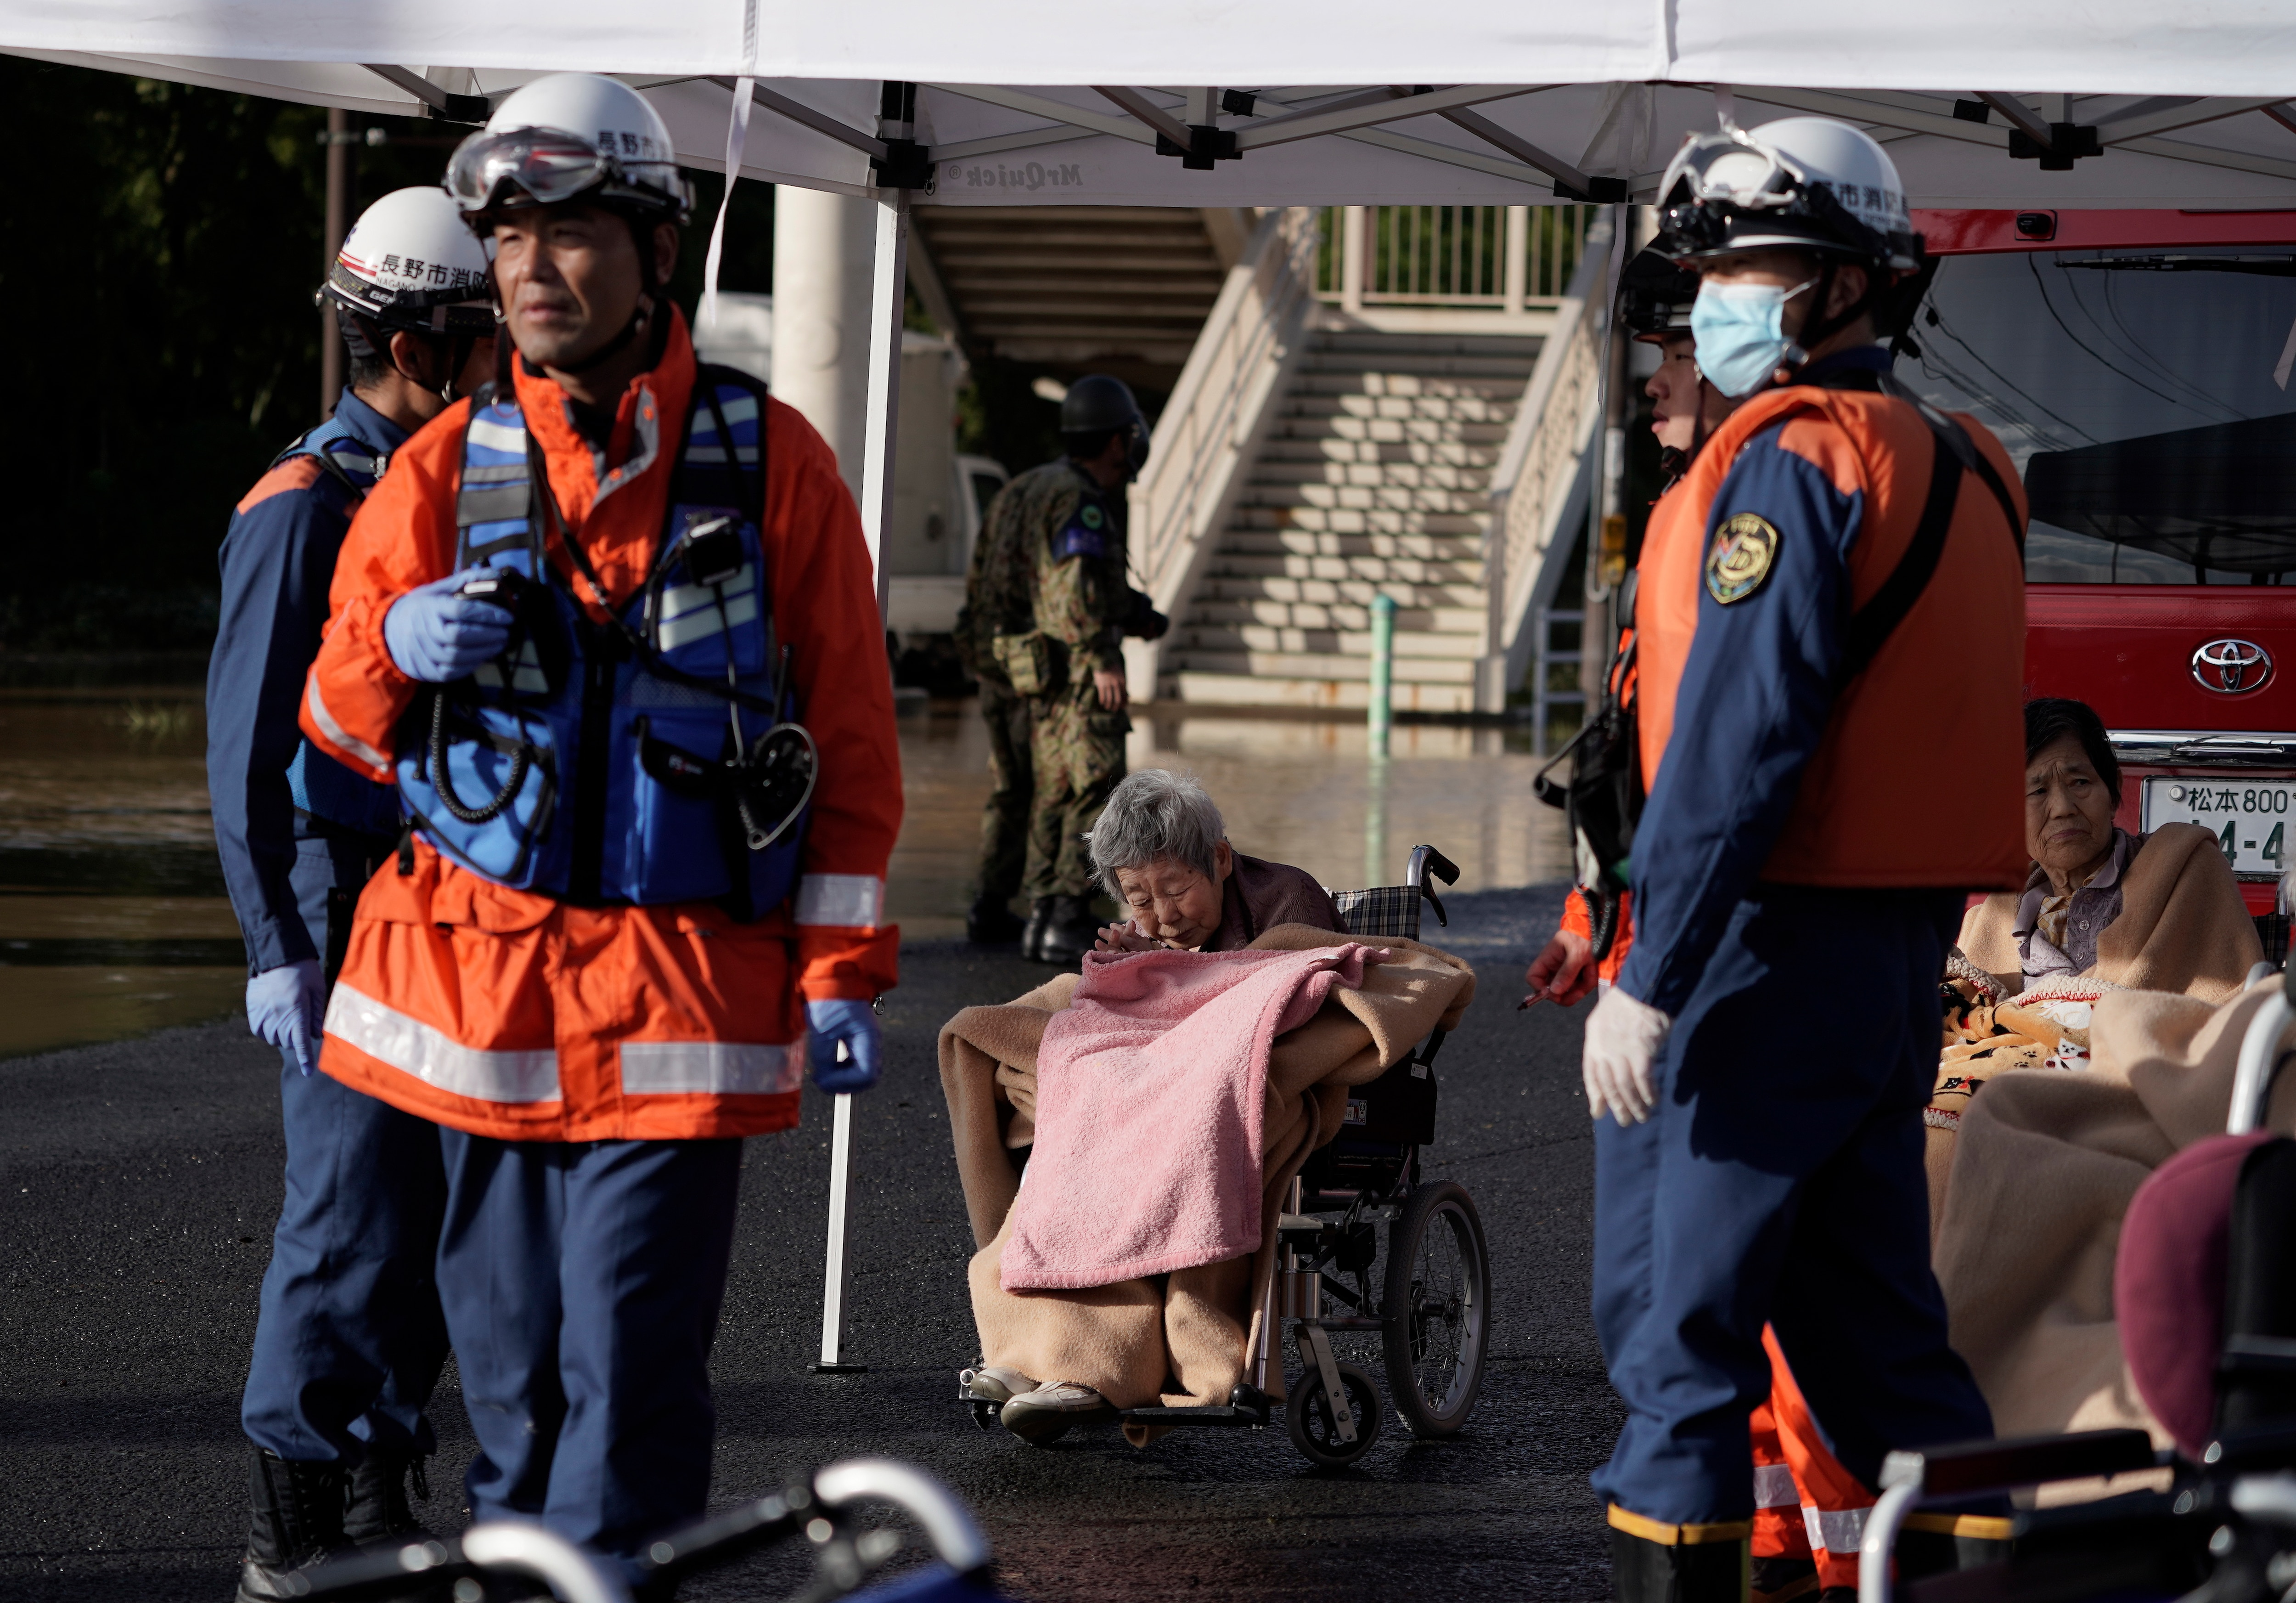 An elderly woman was evacuated along with others from a nursing home flooded by Typhoon Hagibis, before being moved to another facility in Nagano.